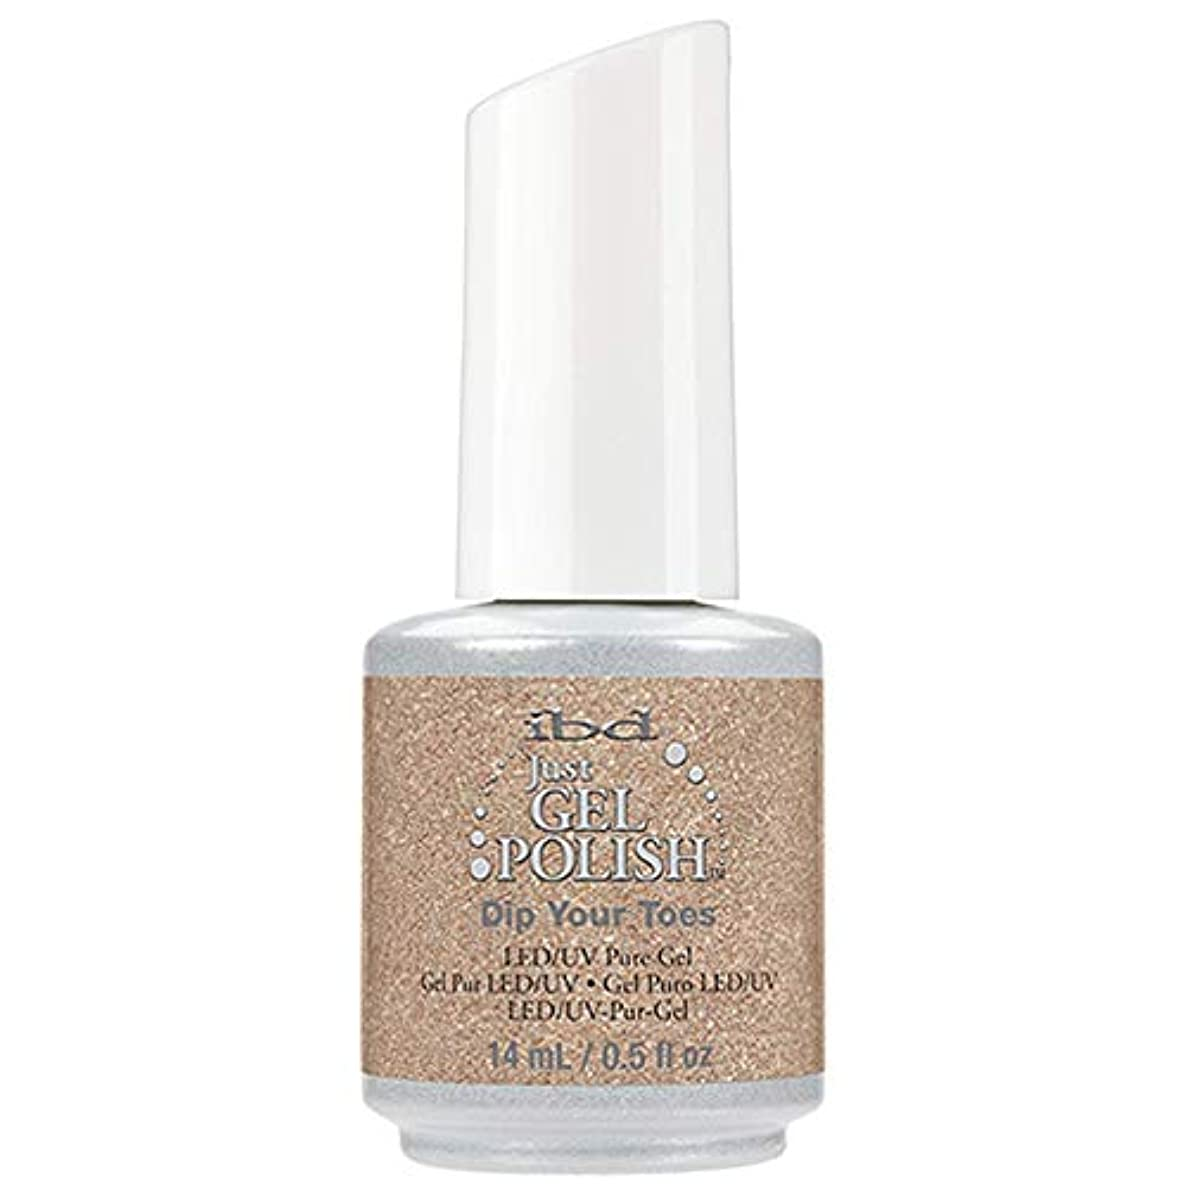 特定の物理的にかけがえのないibd Just Gel Nail Polish - Dip Your Toes - 14ml / 0.5oz